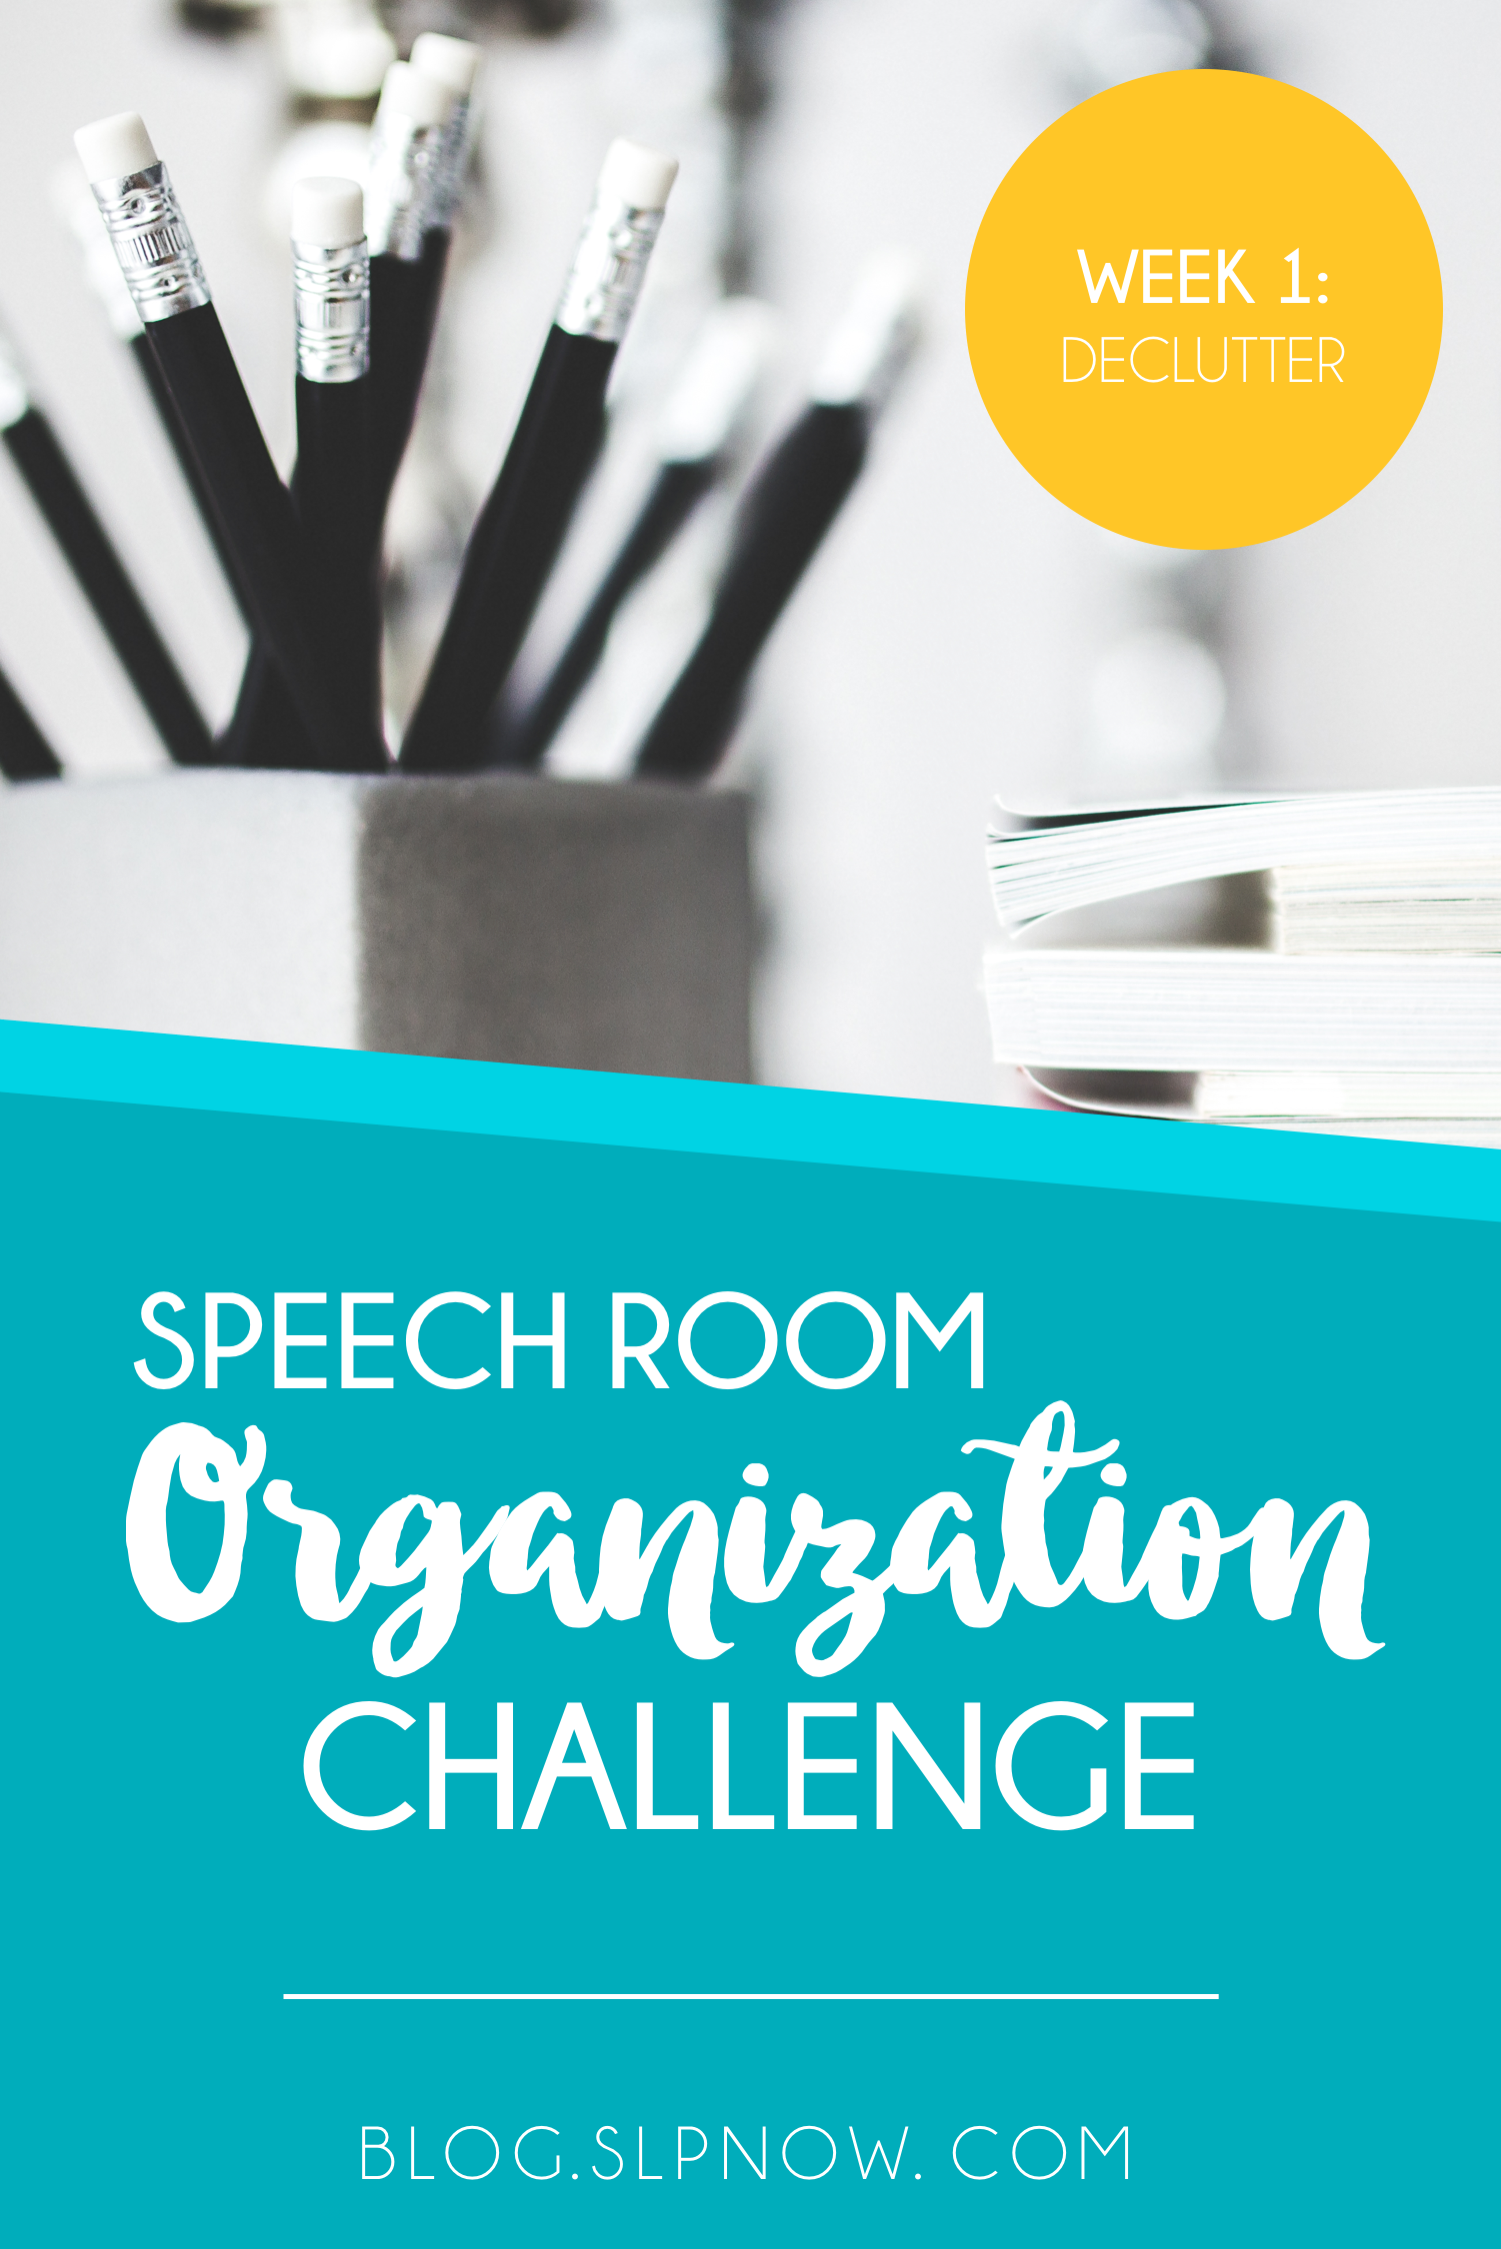 Speech rooms are not very big at all, as we SLPs know, so it's super important to declutter our rooms and keep them neat and organized. But, that's easier said than done, isn't it? This blog post is the first in a series that provides steps to declutter your speech room, so click through to read more!